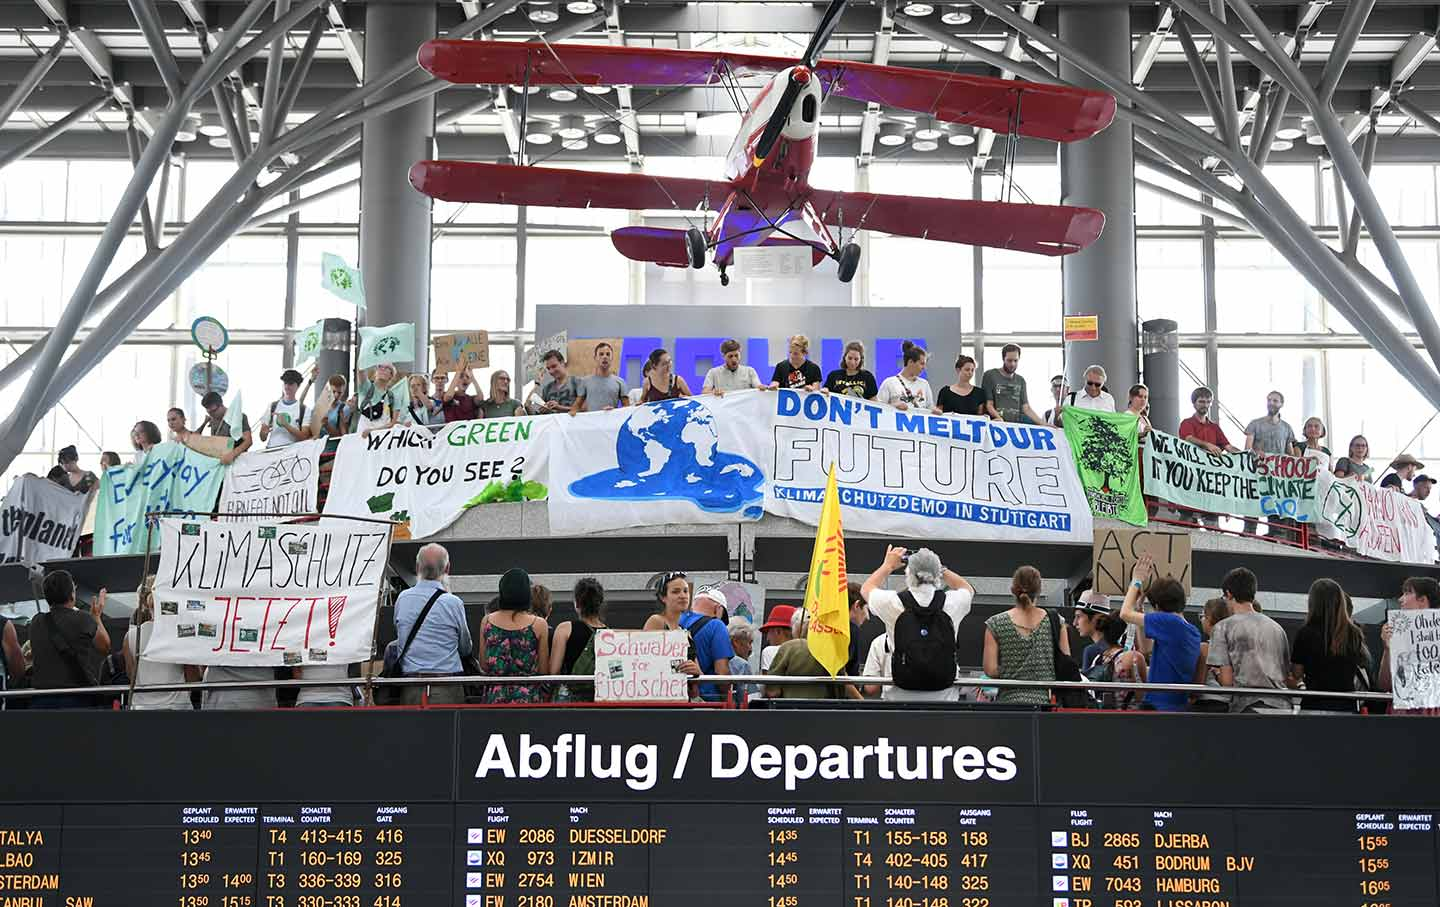 airport-protest-climate-rt-img